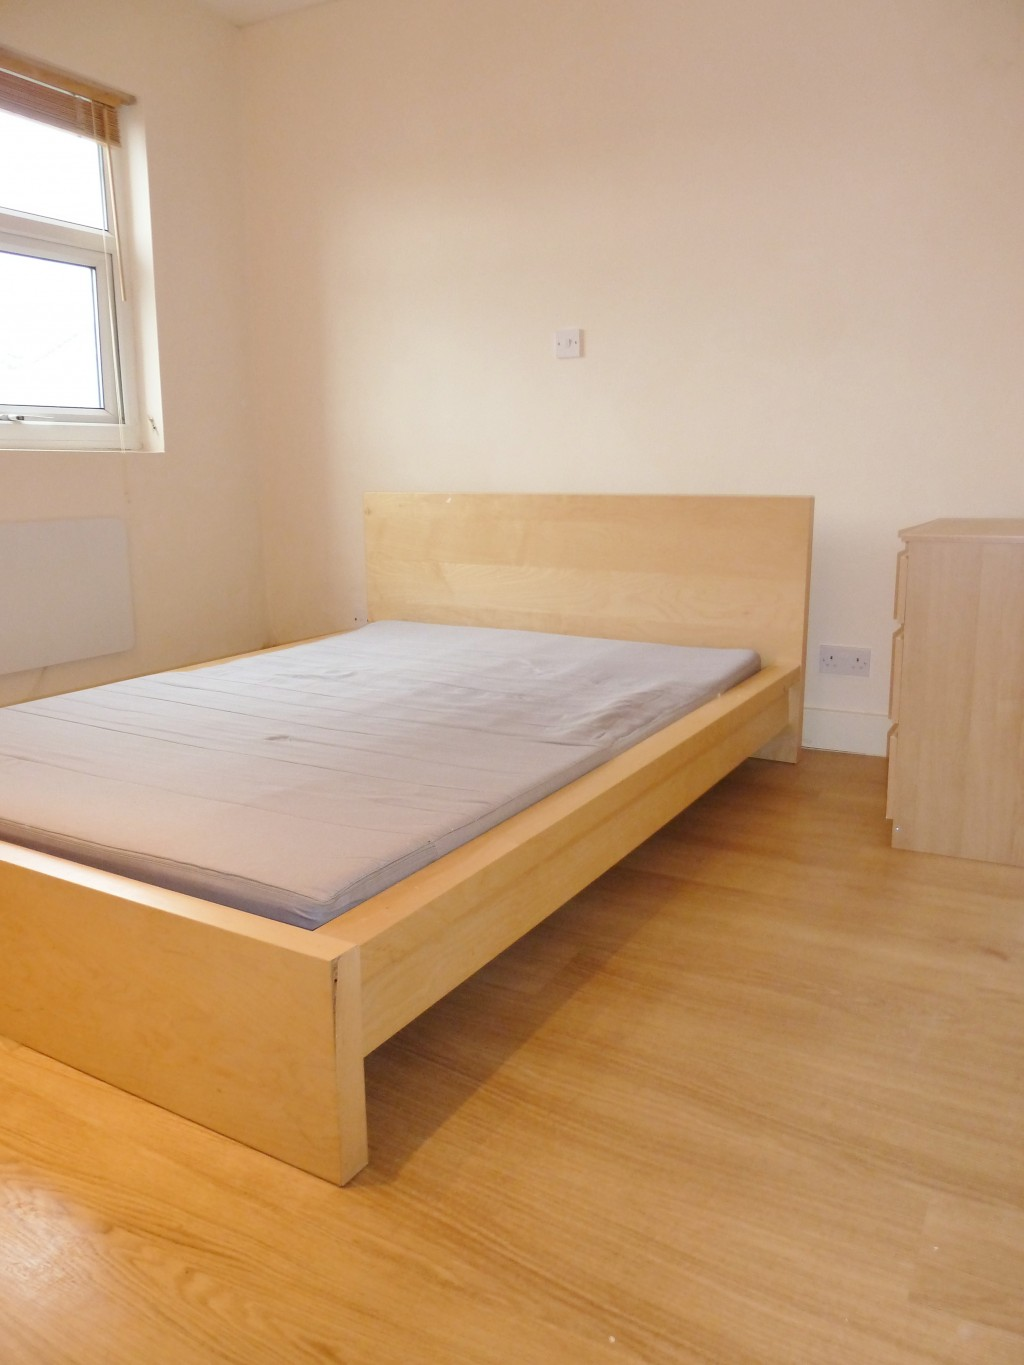 1 bedroom flat flat/apartment To Let in Willesden Green - Bright and Spacious bedroom